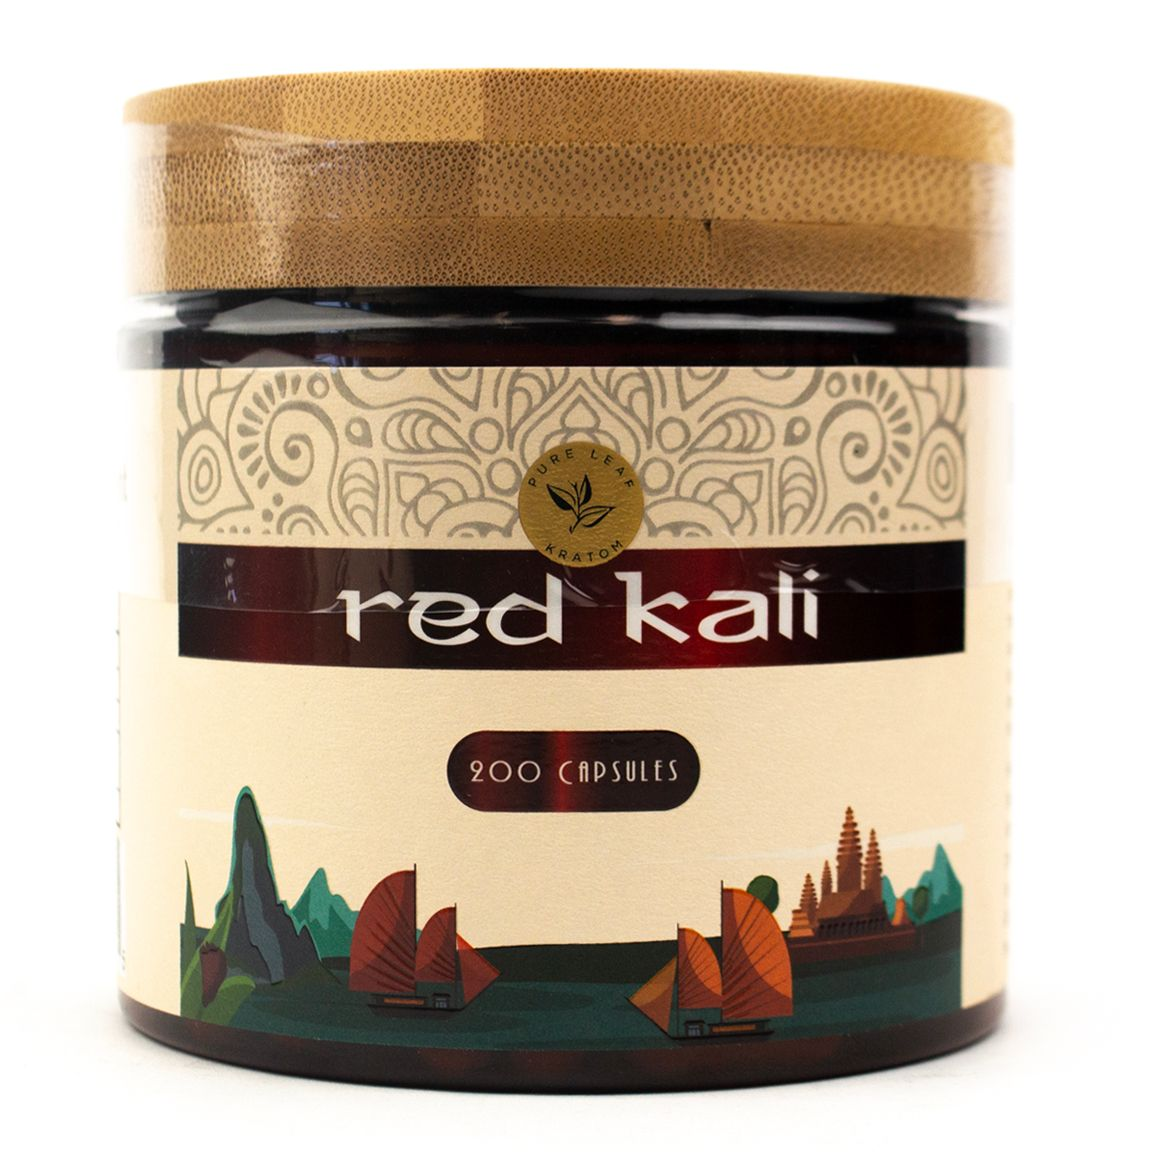 Pure Leaf Red Kali (Capsules)